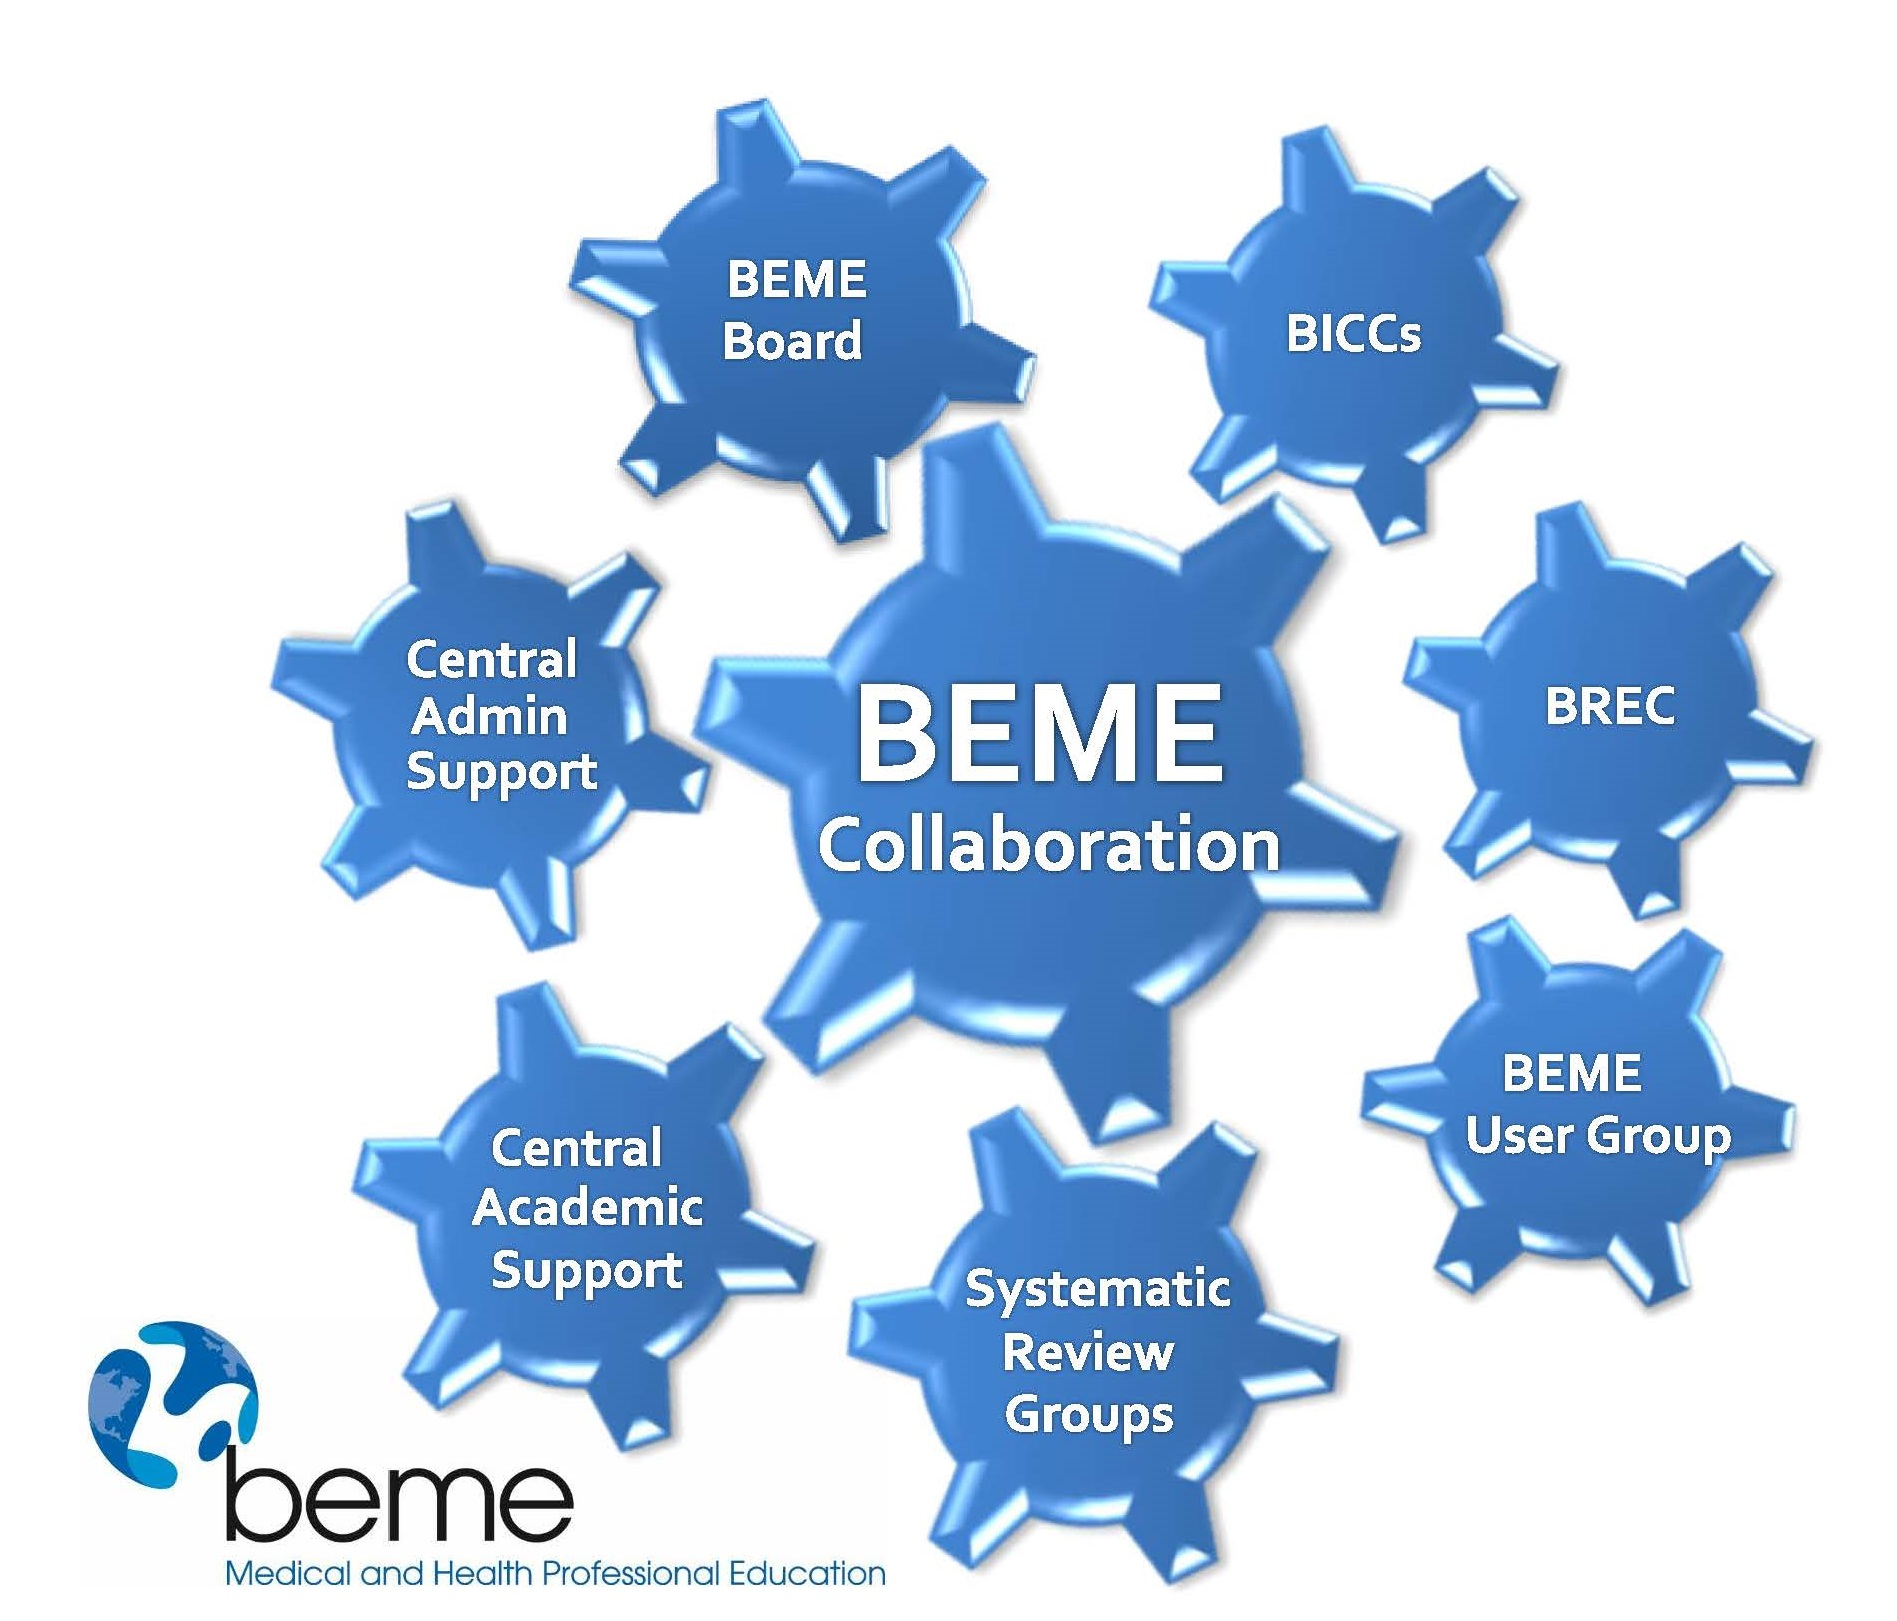 BEME_Structure August 2015.jpg